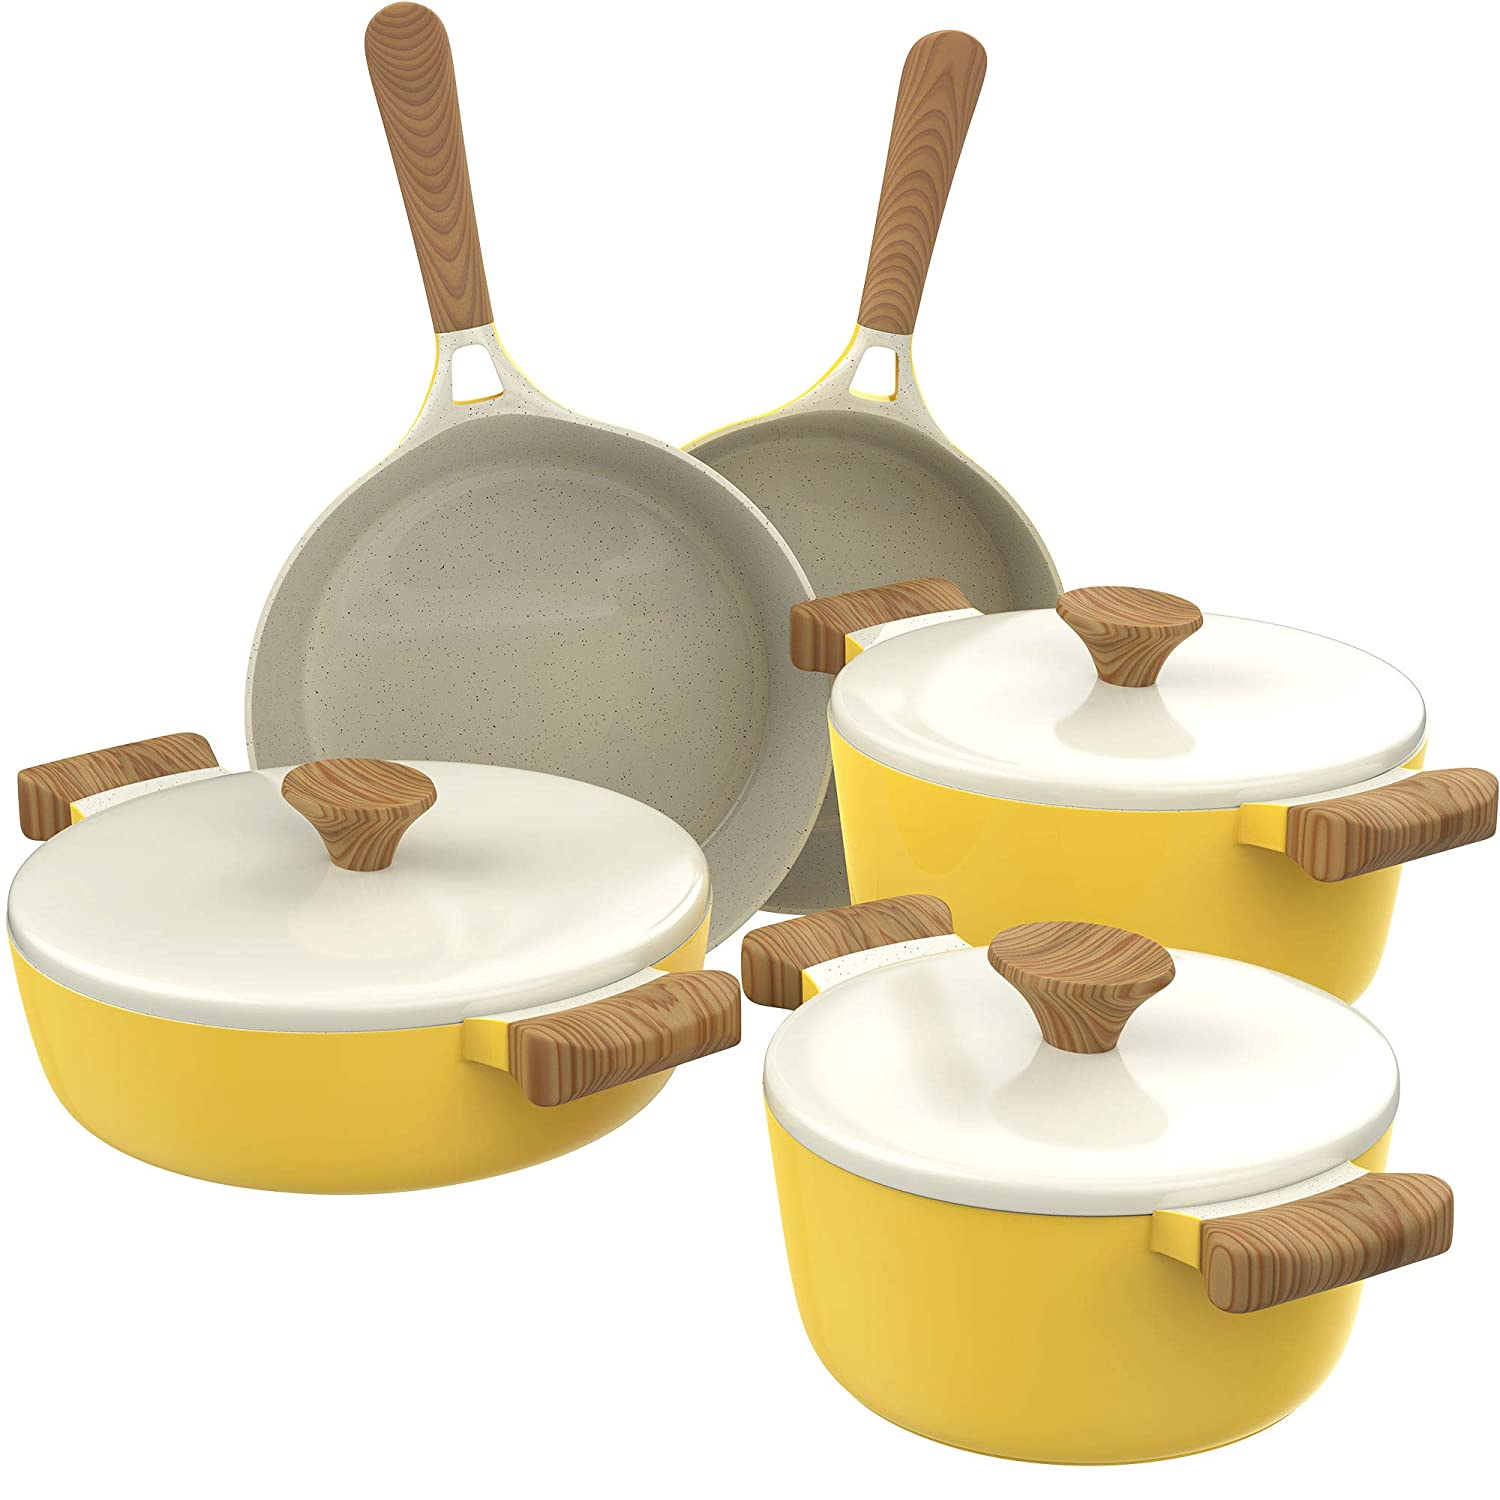 hOmeLabs Ceramic 8 Piece Cookware Set - Compatible with Induction Stovetop Non Stick Pots with Lids and Nonstick Frying Pans - Dishwasher Safe - Dutch Oven Pot Fry Pan Sets - PTFE PFOA Free - Yellow